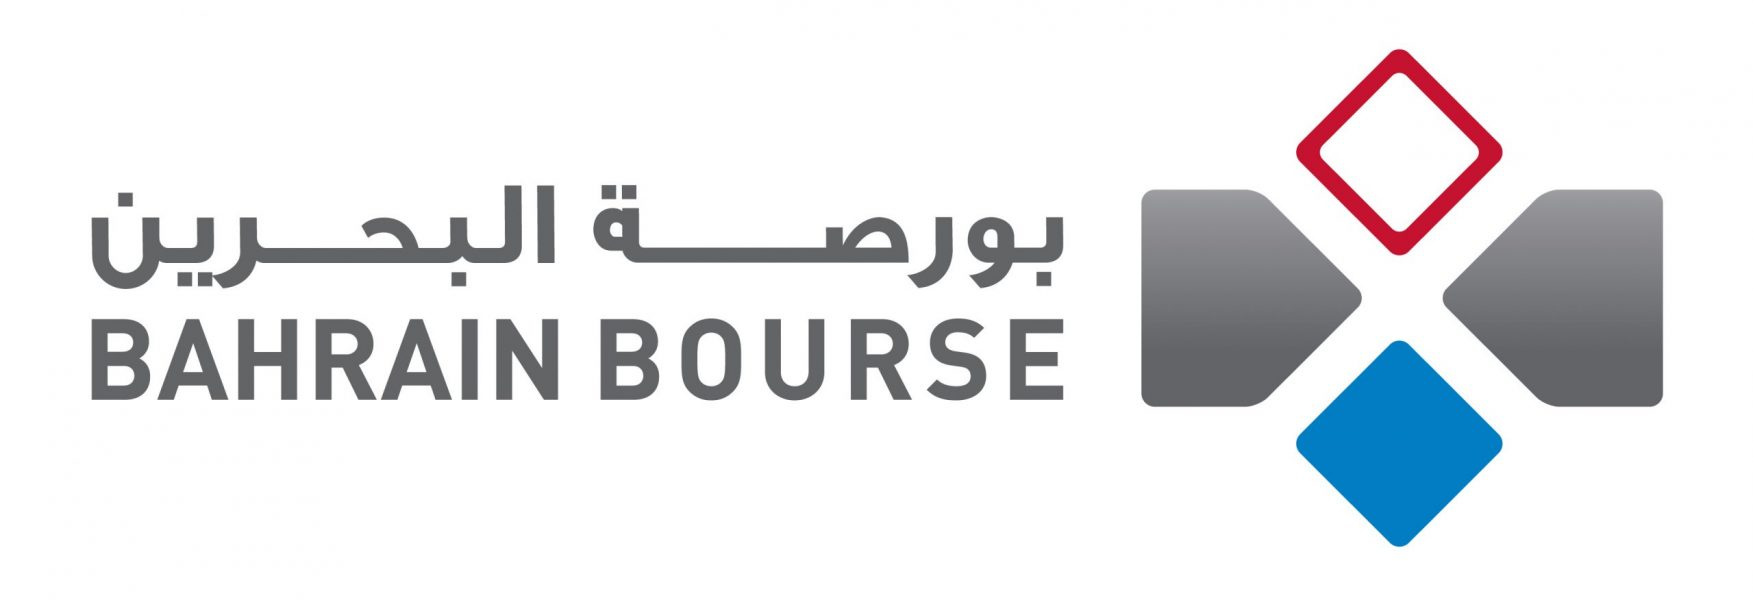 Thomas-Murray-Upgraded-Bahrain-Bourse's-rating-fro